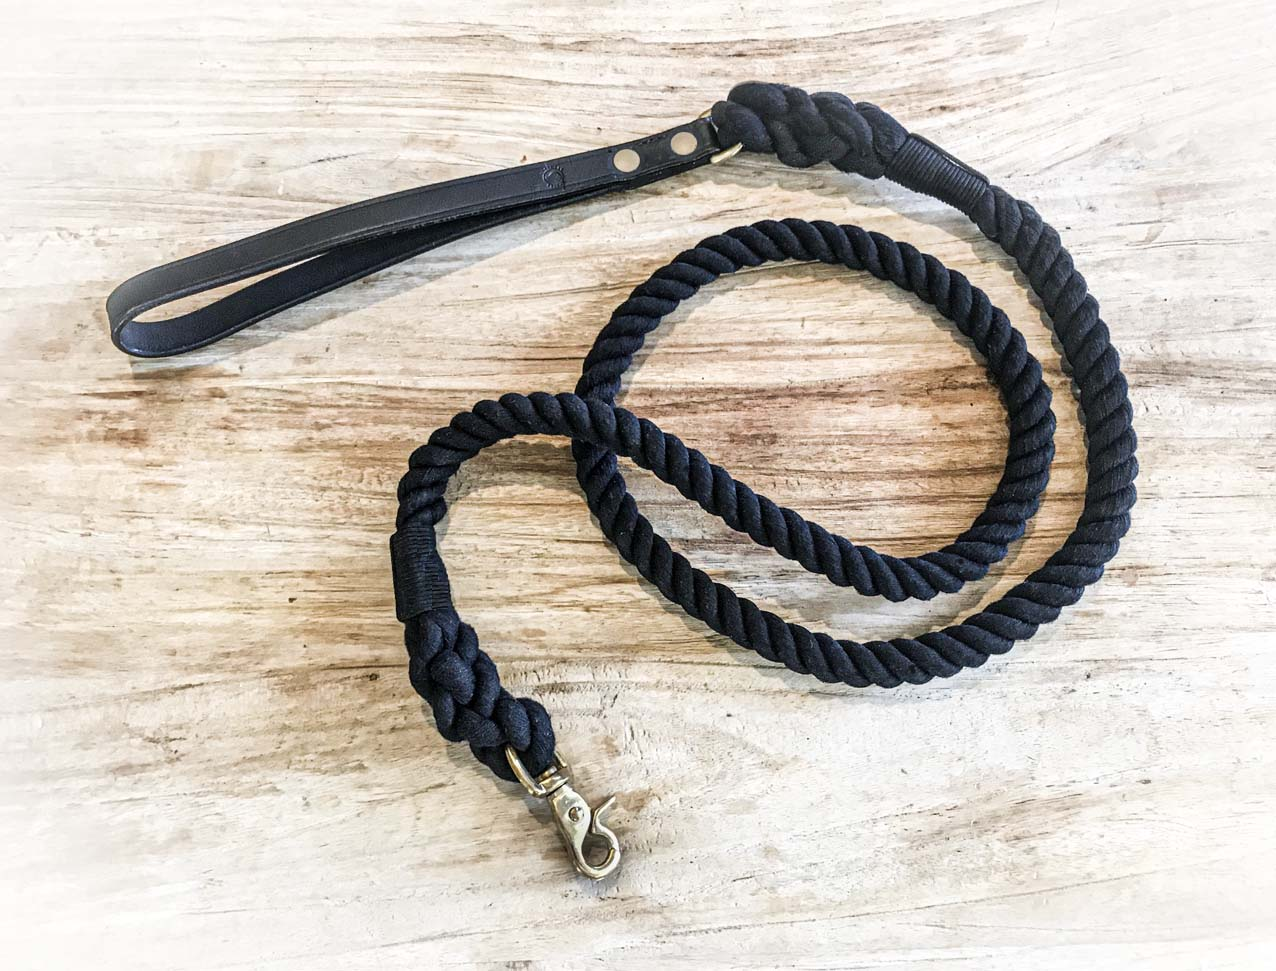 black rope dog lead laying on wood